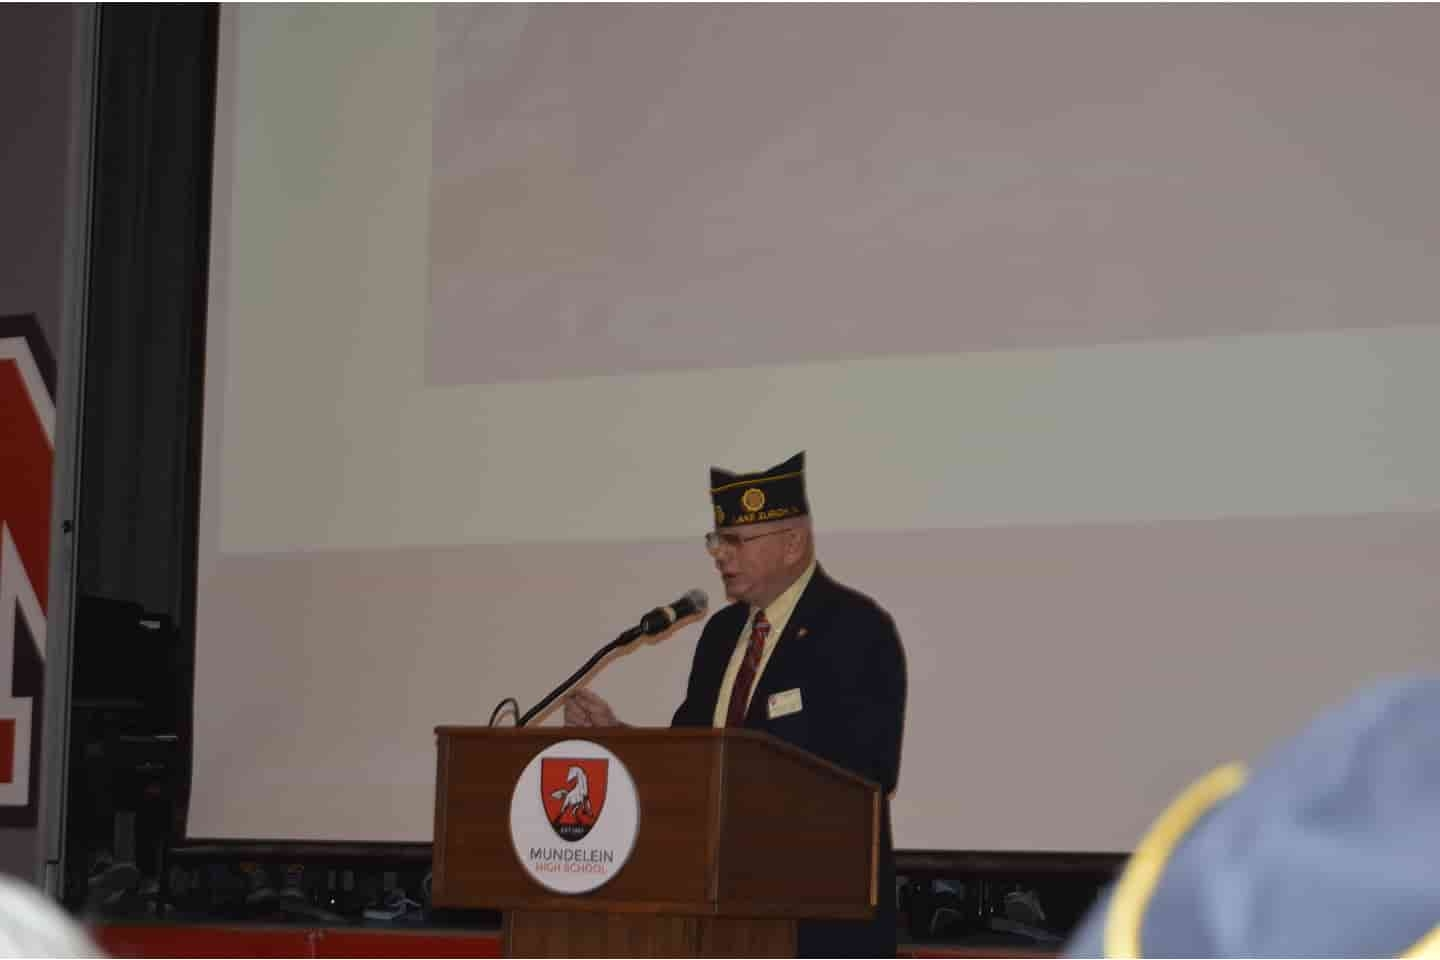 Mike Peck revealed to the assembly at MHS Veterans Day Program that he is true